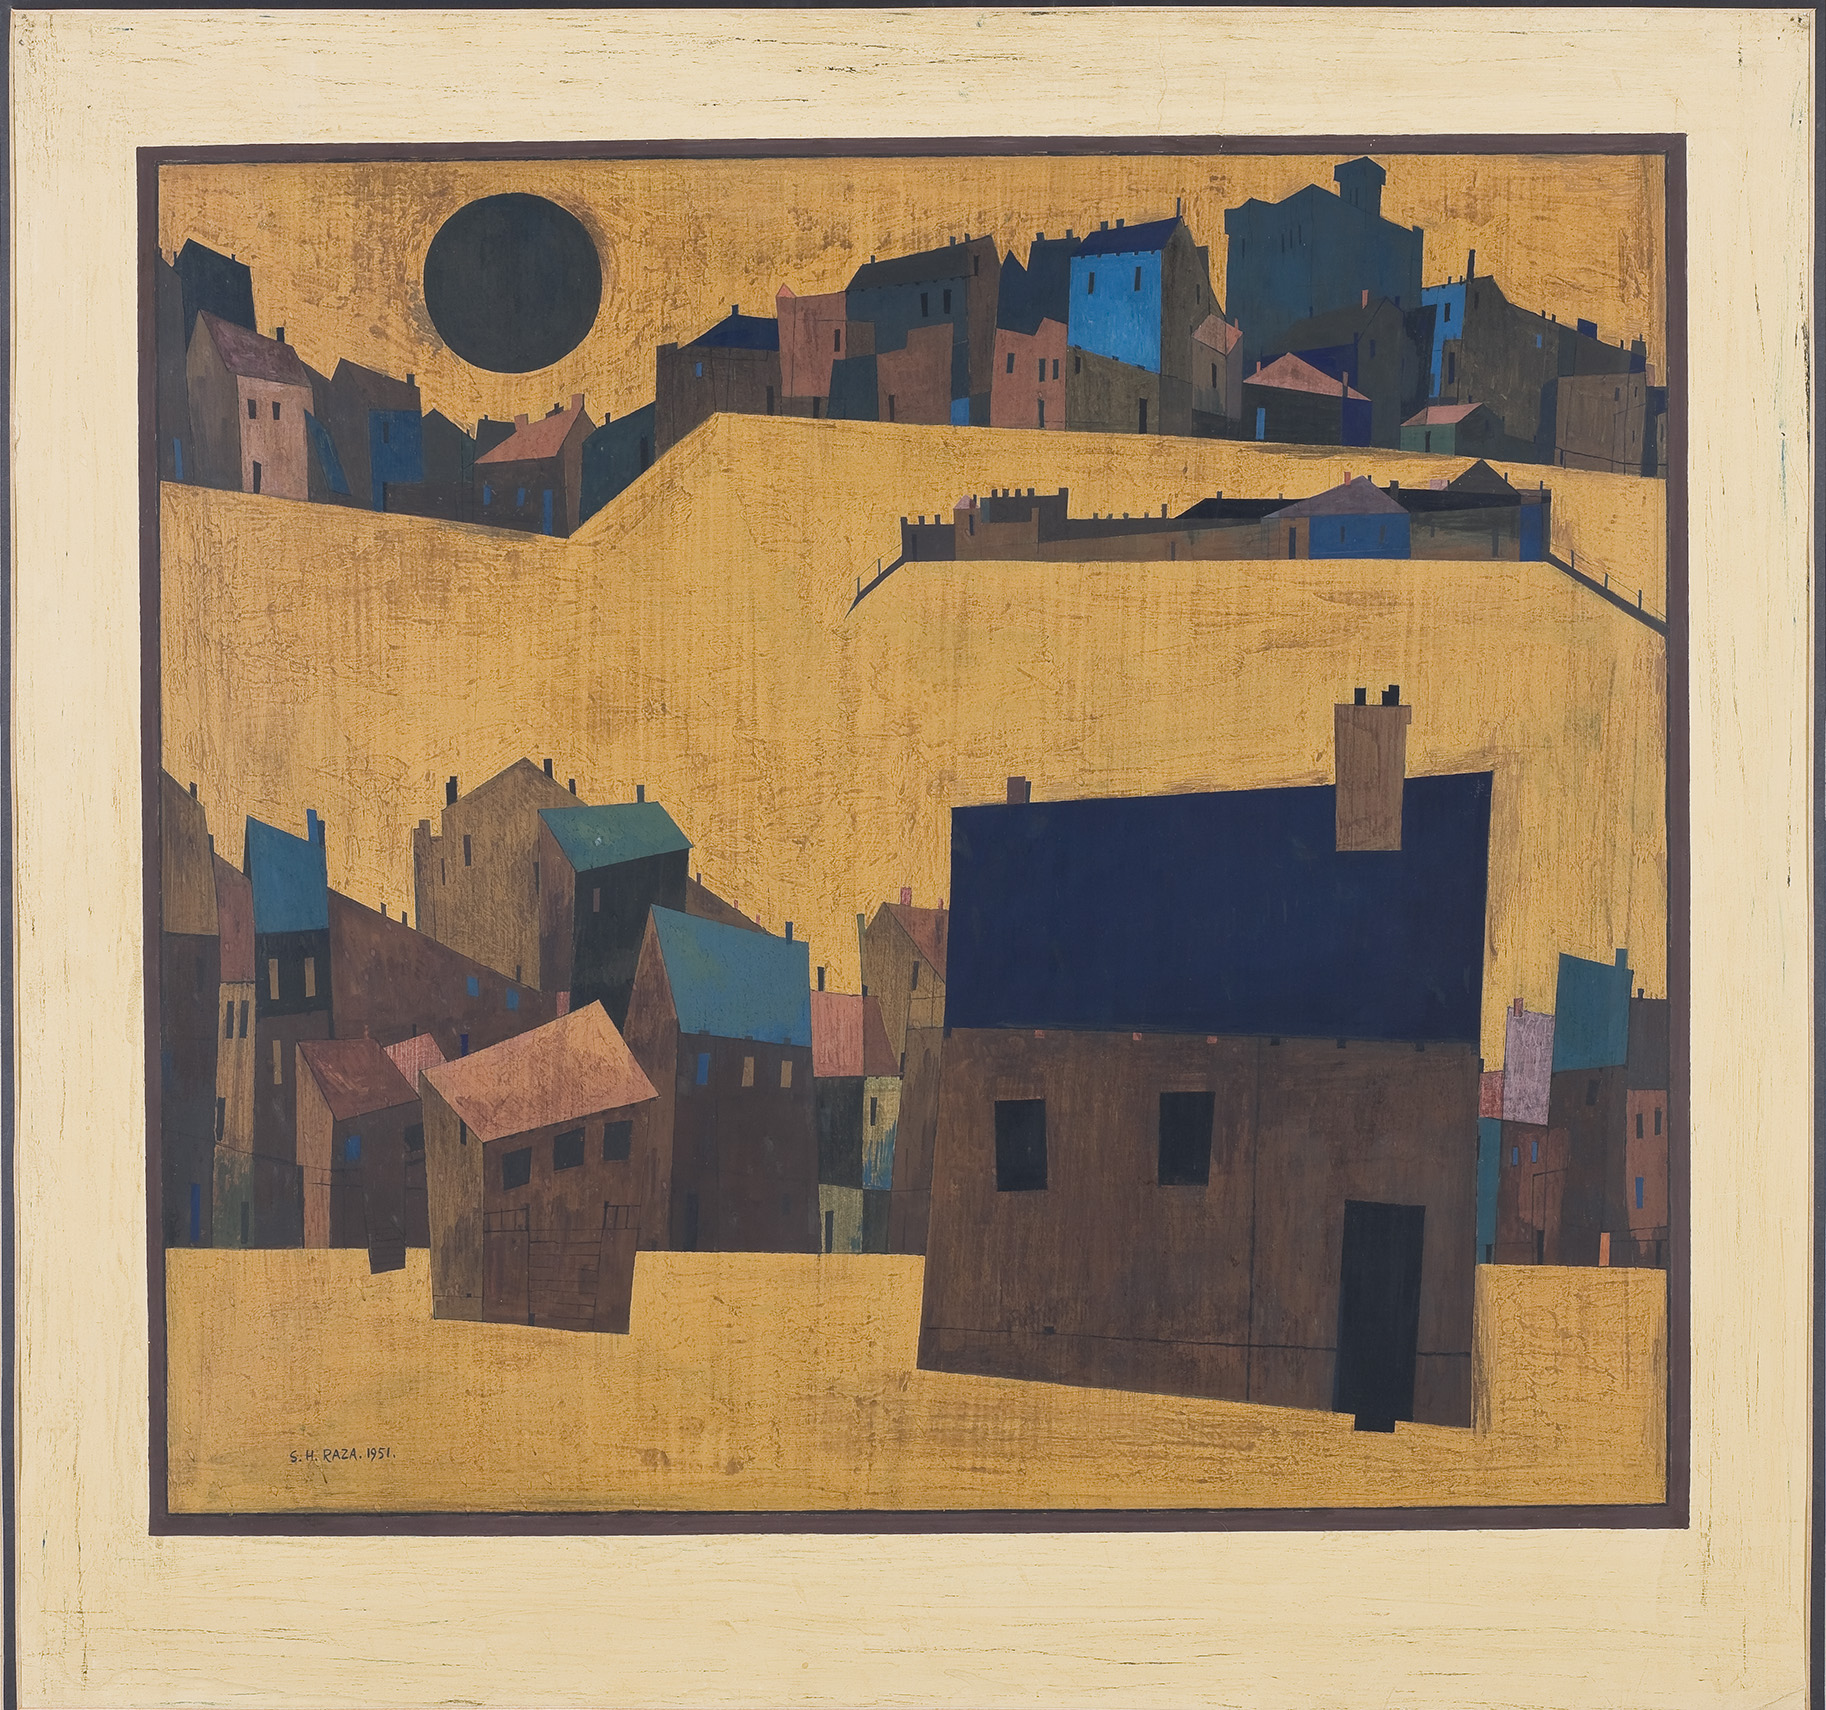 S. H. Raza, Haut de Cagnes, 1951, Gouache on paper.  Painted in 1951 soon after Raza's arrival in Paris, Haut de Cagnes is a product of the artist's encounter with Europe.  Two rows of stylized houses cut across the canvas. Except for glimpses of a castle tower, medieval ramparts, the forms are reduced to essential geometric forms. There are no visible signs of human presence. A large black sun hangs over the top left corner of the painting. This would later became the defining bindu motif in Raza's landscapes. BHT